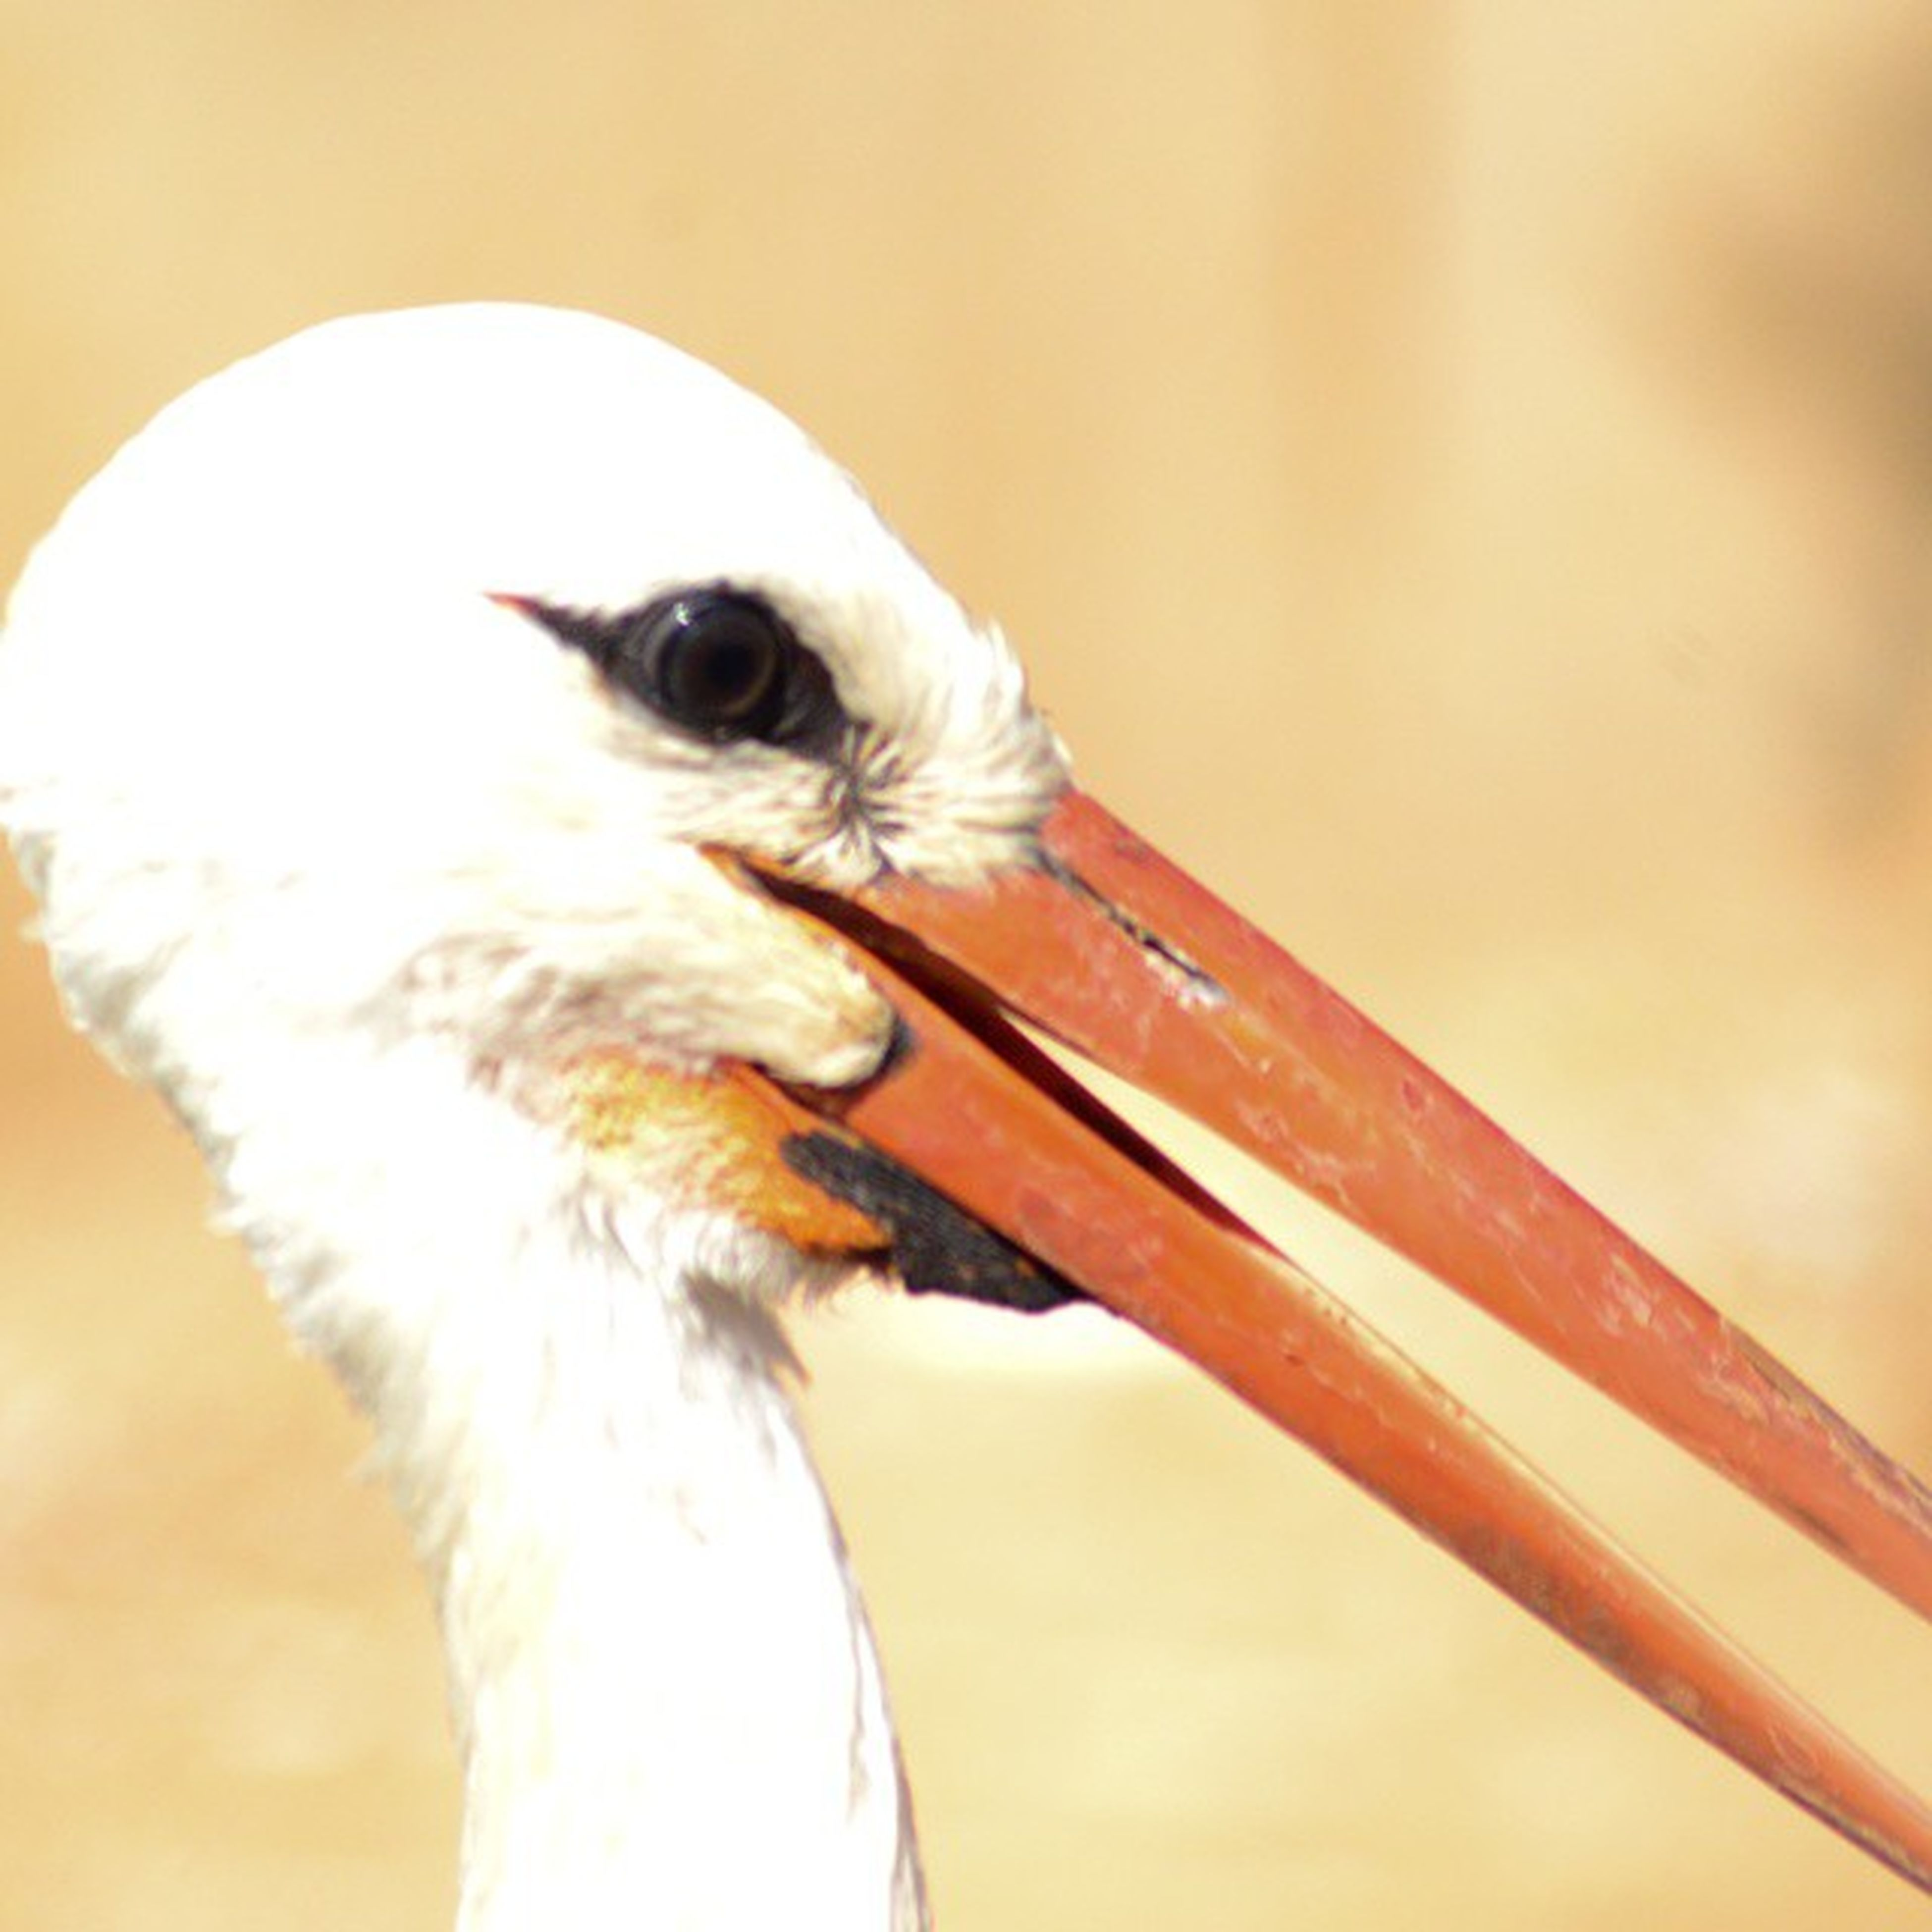 animal themes, one animal, bird, close-up, wildlife, animal head, focus on foreground, animals in the wild, indoors, domestic animals, pets, beak, looking away, animal body part, part of, side view, white color, zoology, day, selective focus